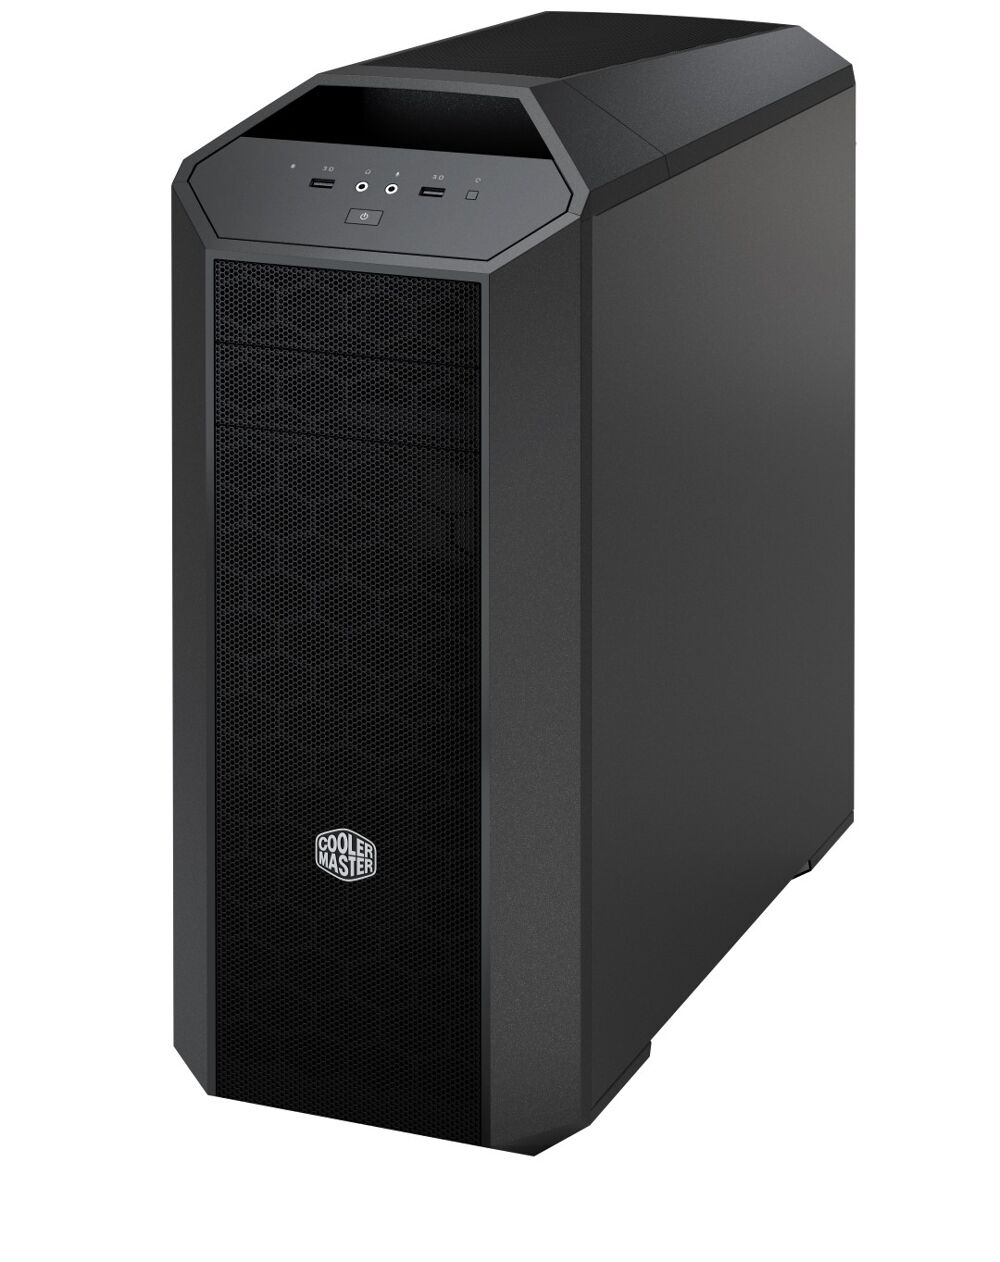 Cooler Master MasterCase 5 available on this 20th August 26